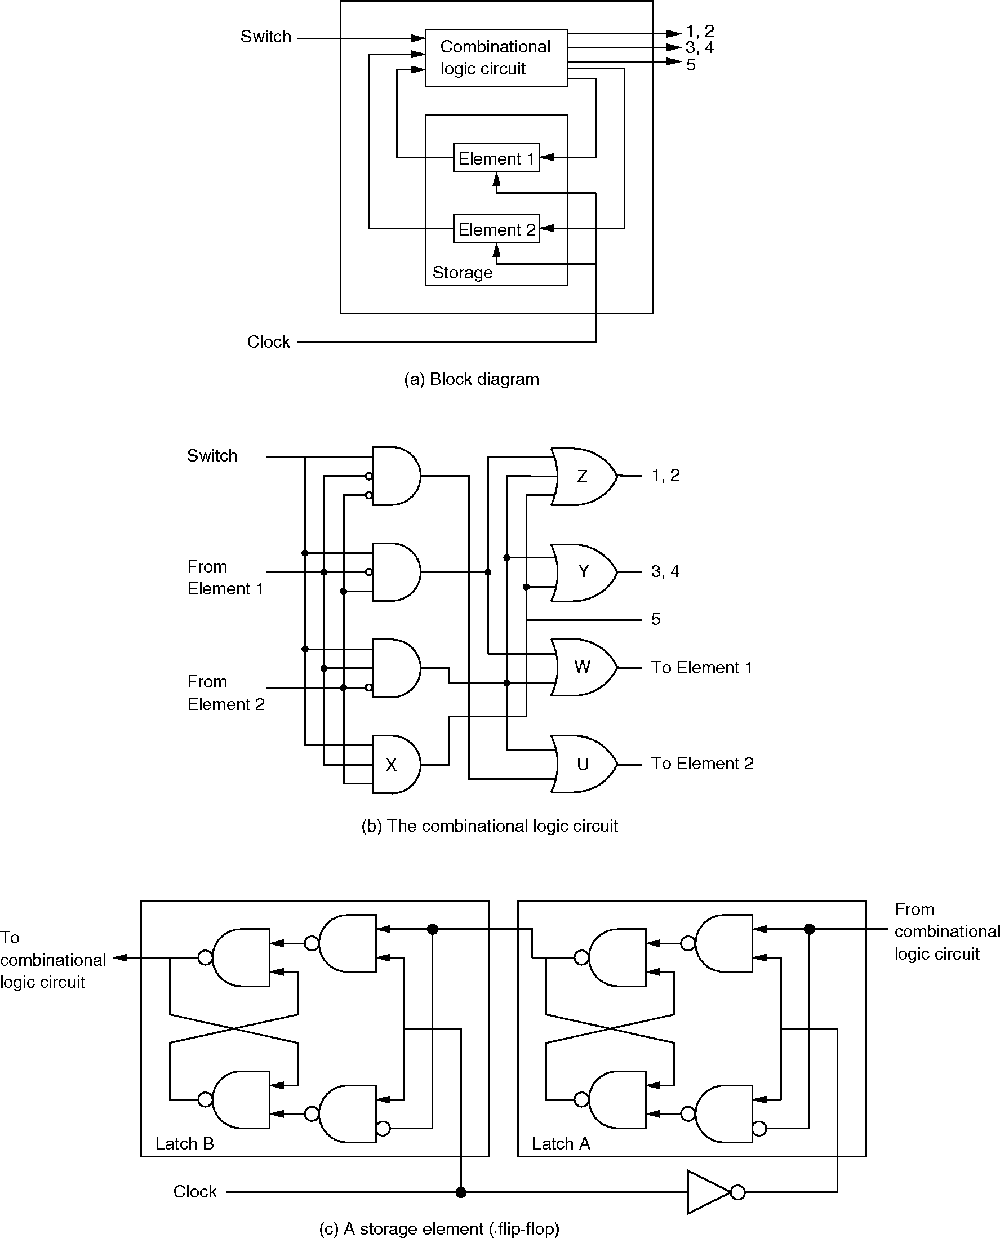 Draw A Circuit Diagram For The Circuit Of Figure 1